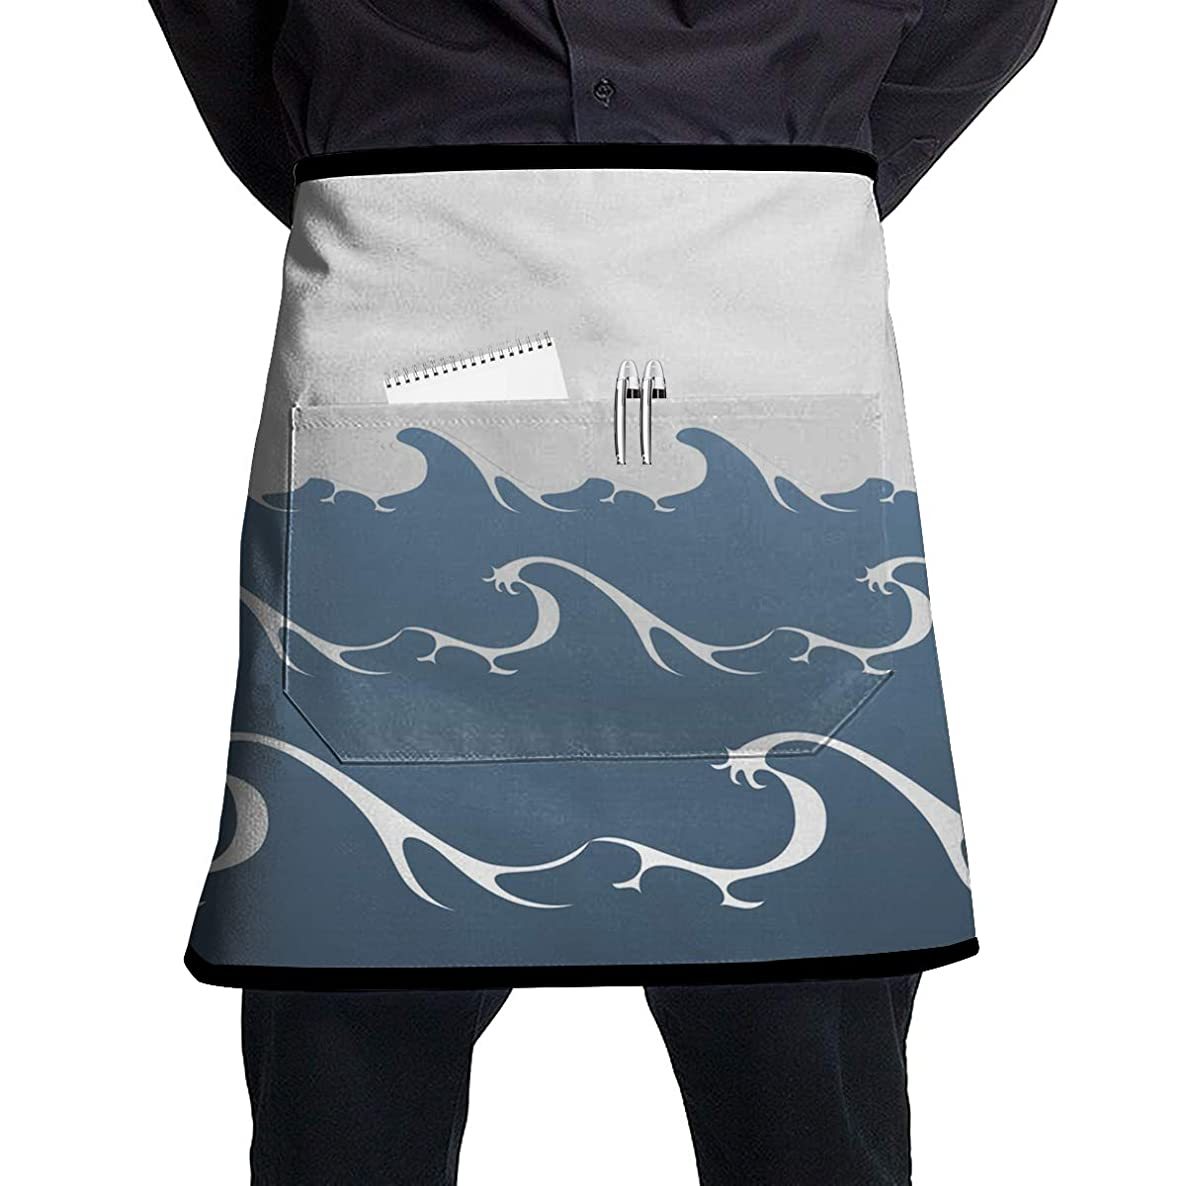 ALLMYHOMEDECOR Summer Ocean Sea Waves Waist Aprons Bib Mens Womens Adjustable Polyester Cooking Gardening BBQ Kitchen Chef Apron for Outdoor Serving Grill Restaurant Cleaning Baking Crafting